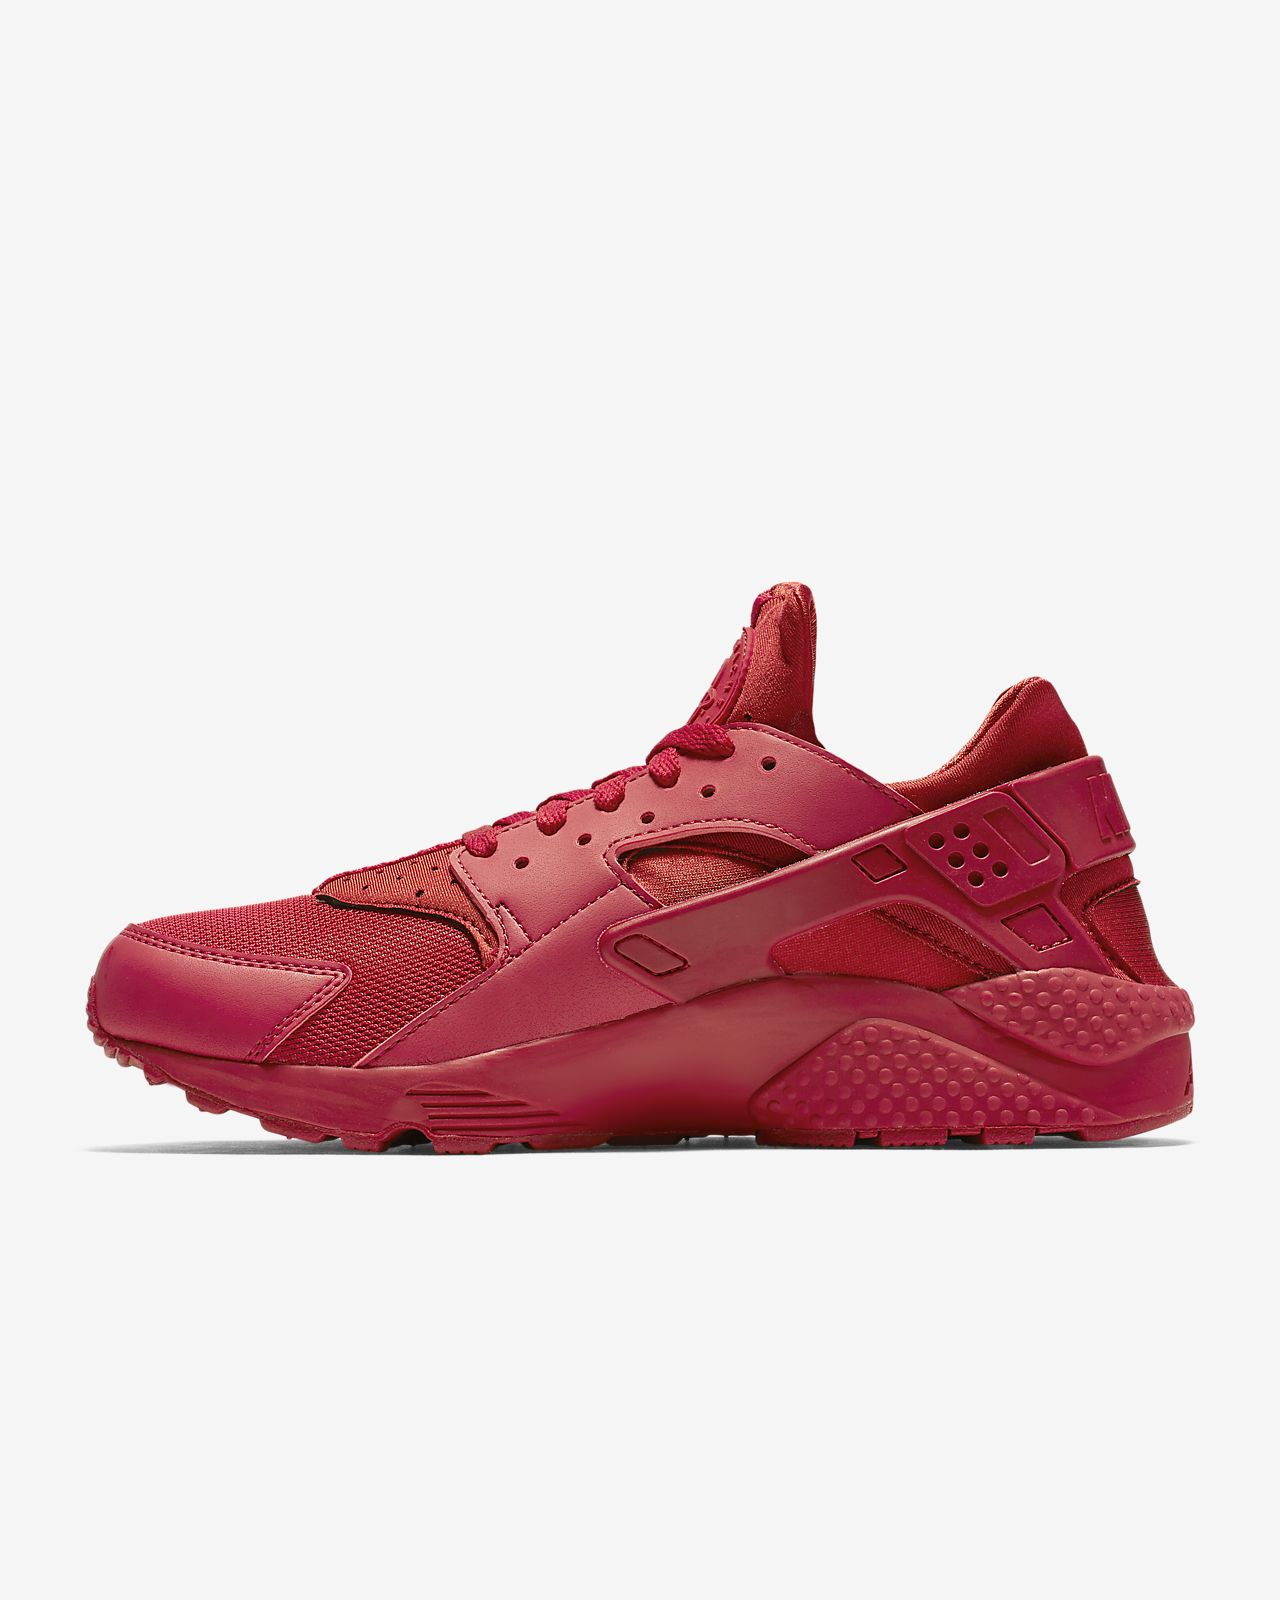 new product f4a3e 80a0f ... Nike Air Huarache Men s Shoe